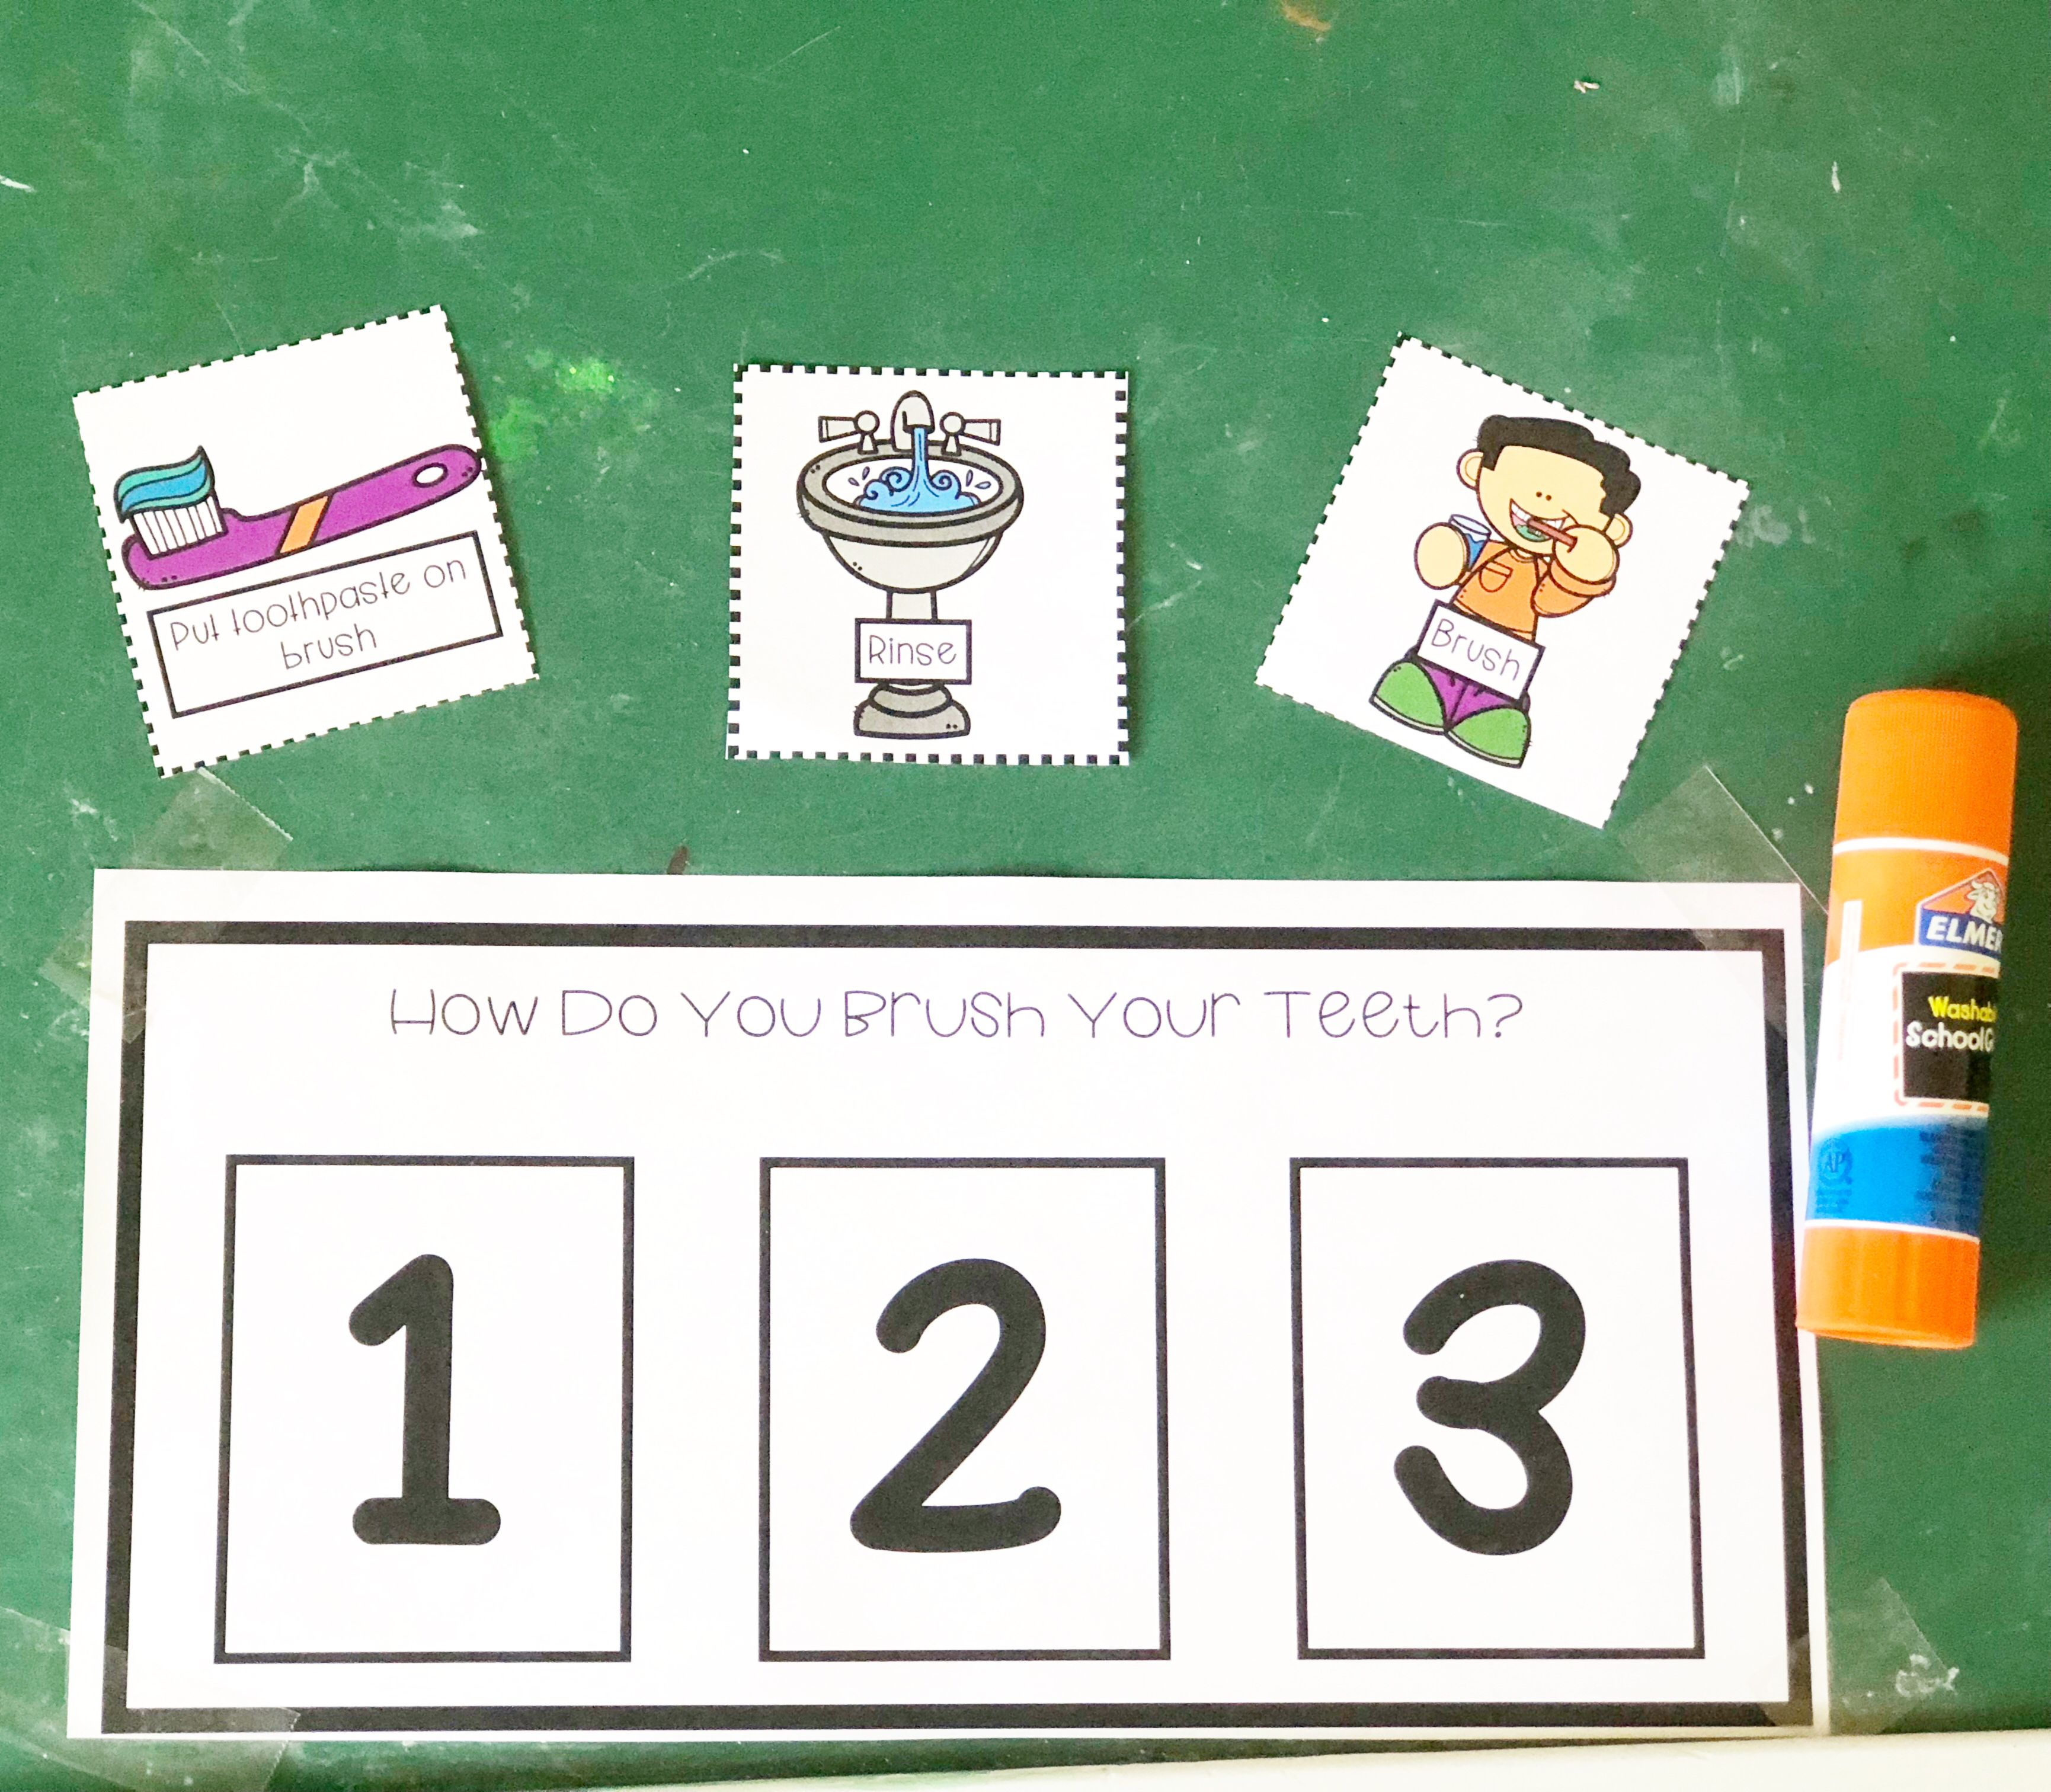 Community Helpers Tot School Lesson Plans And Activity